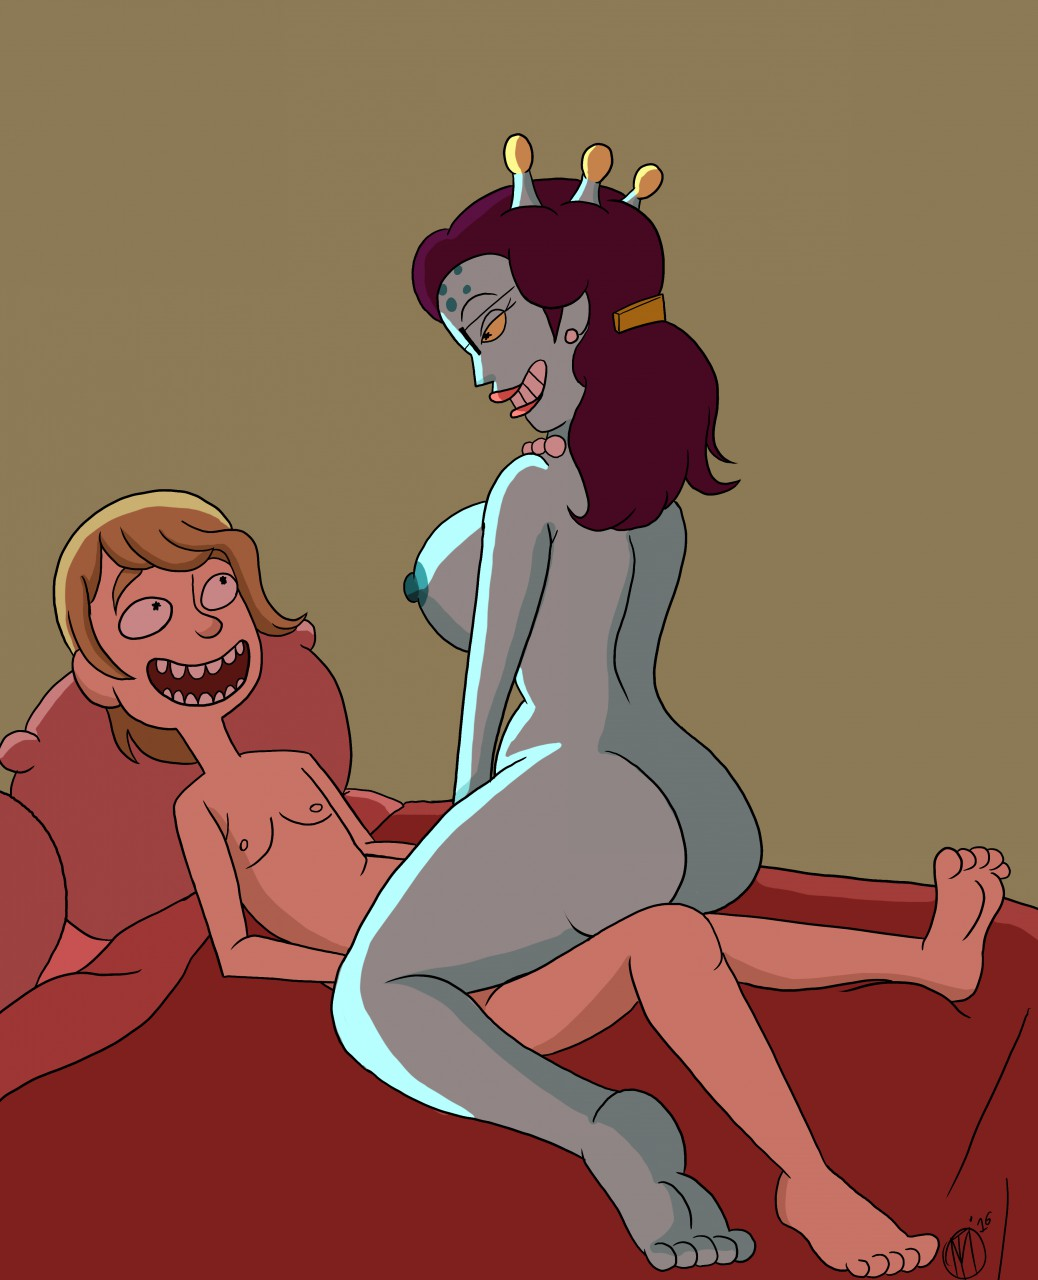 and of index rick season morty 4 Pregnant my little pony giving birth